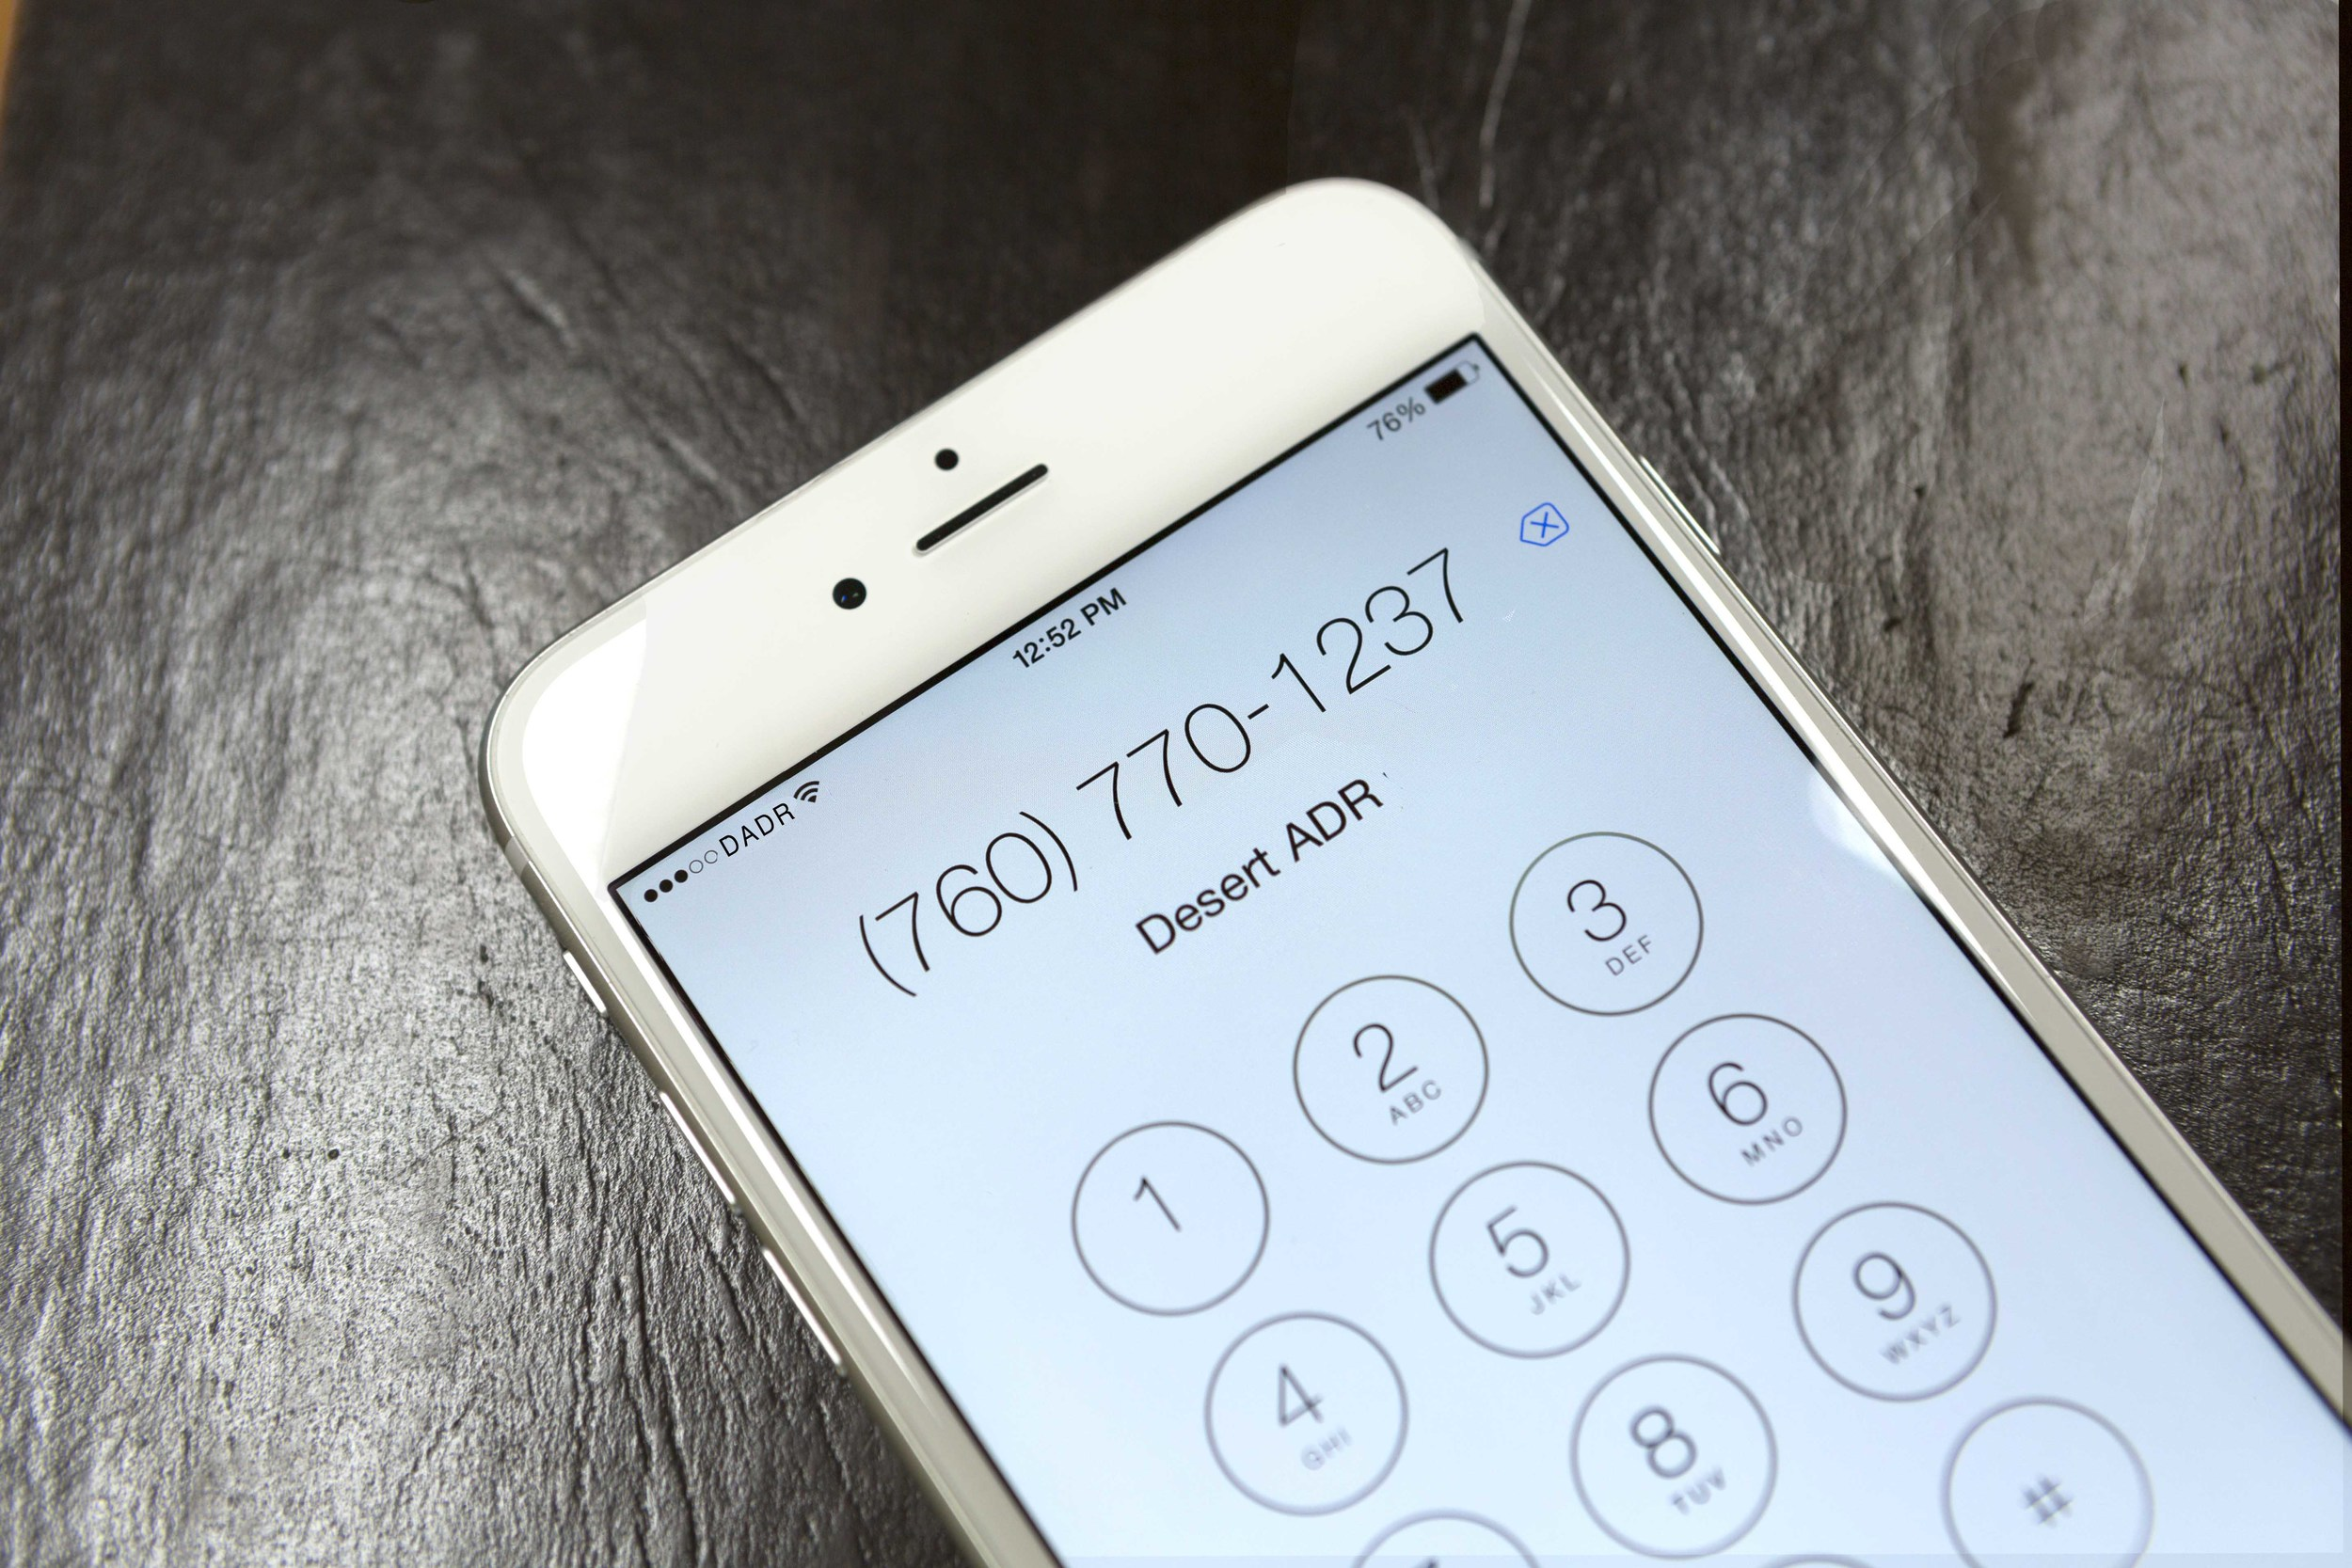 Image of cell phone showing phone number for desert ADR: 760-770-1237. photo by judge robert taylo (Ret.)